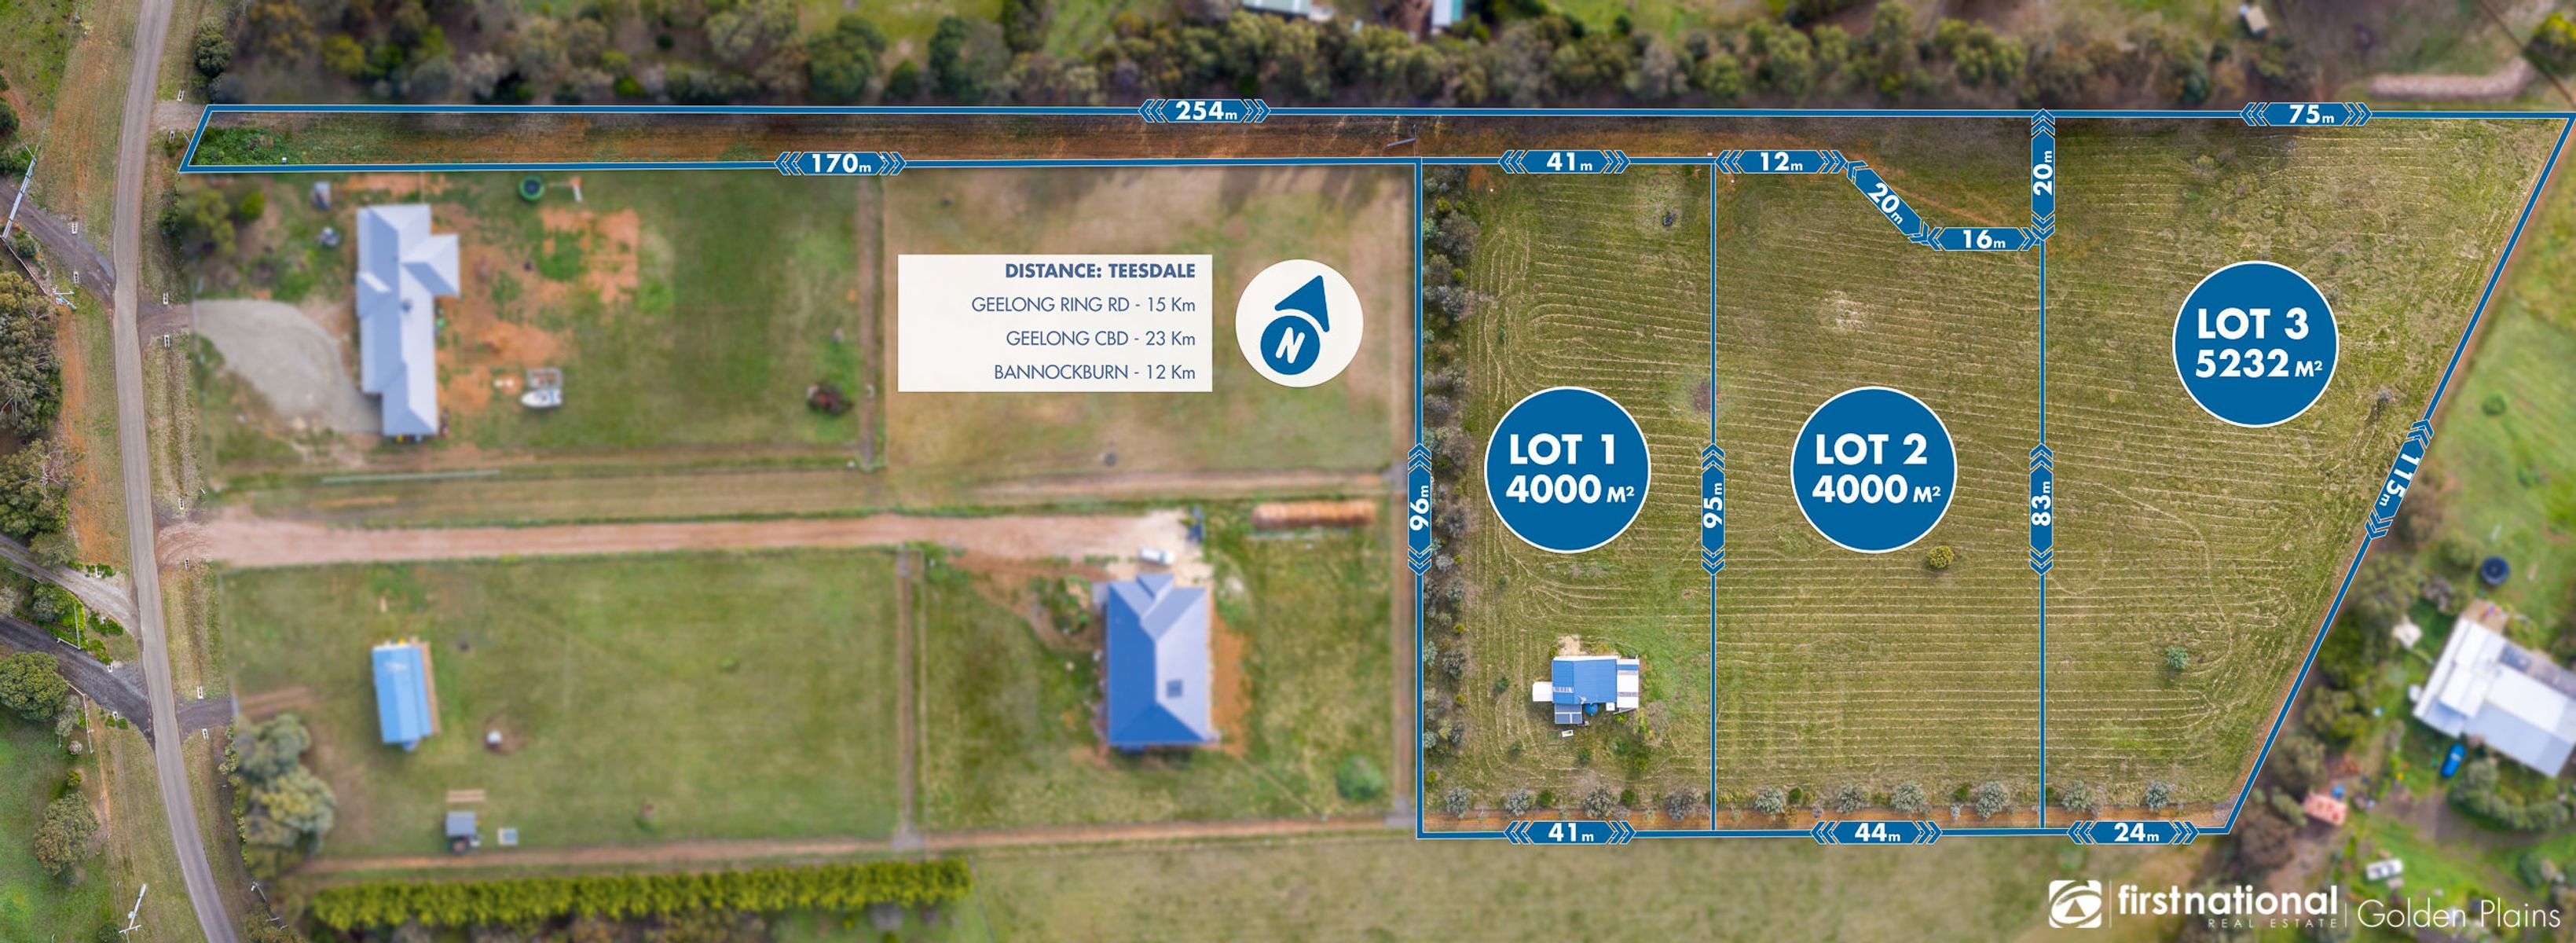 Lot 1, 120 Eagle Court, Teesdale, VIC 3328